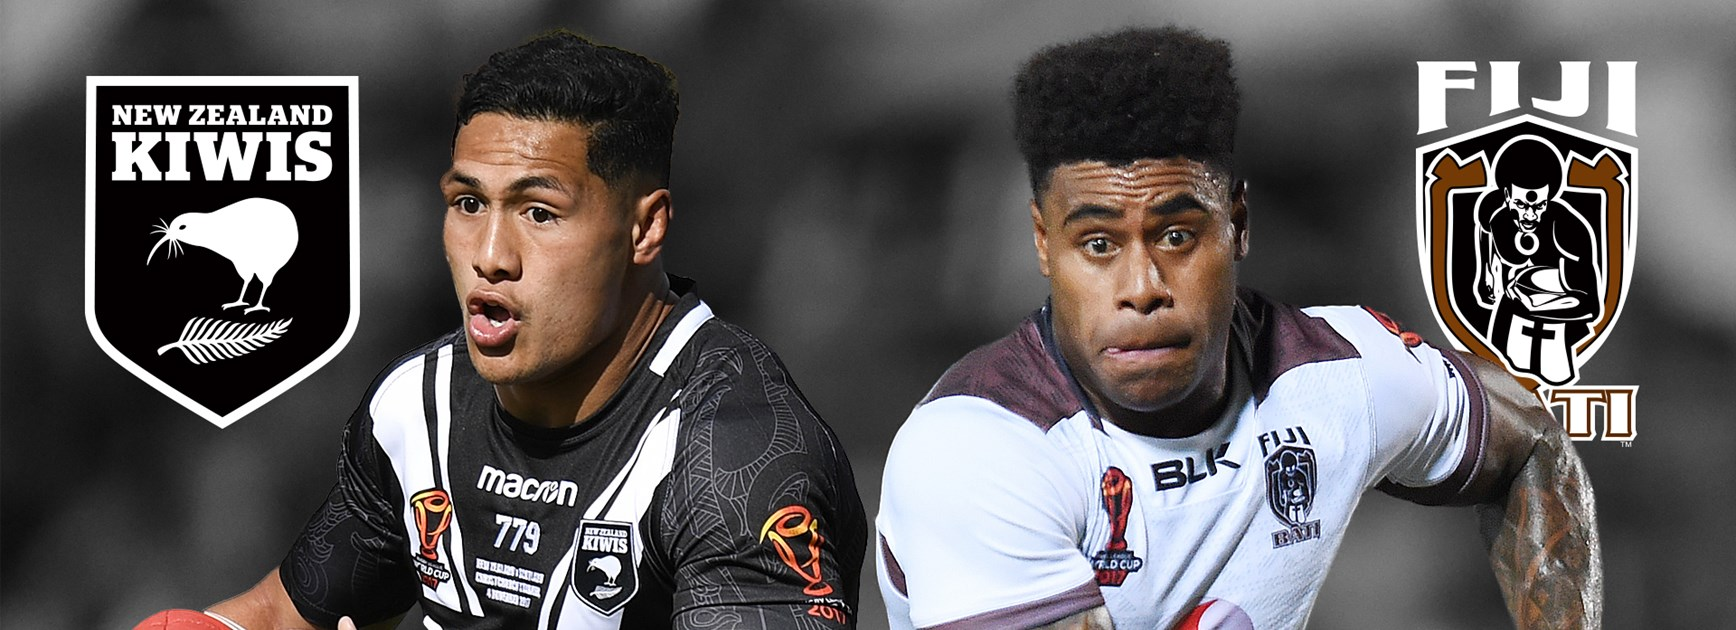 Fullbacks Roger Tuivasa-Sheck and Kevin Naiqama fill go head to head in the World Cup quarter-finals.